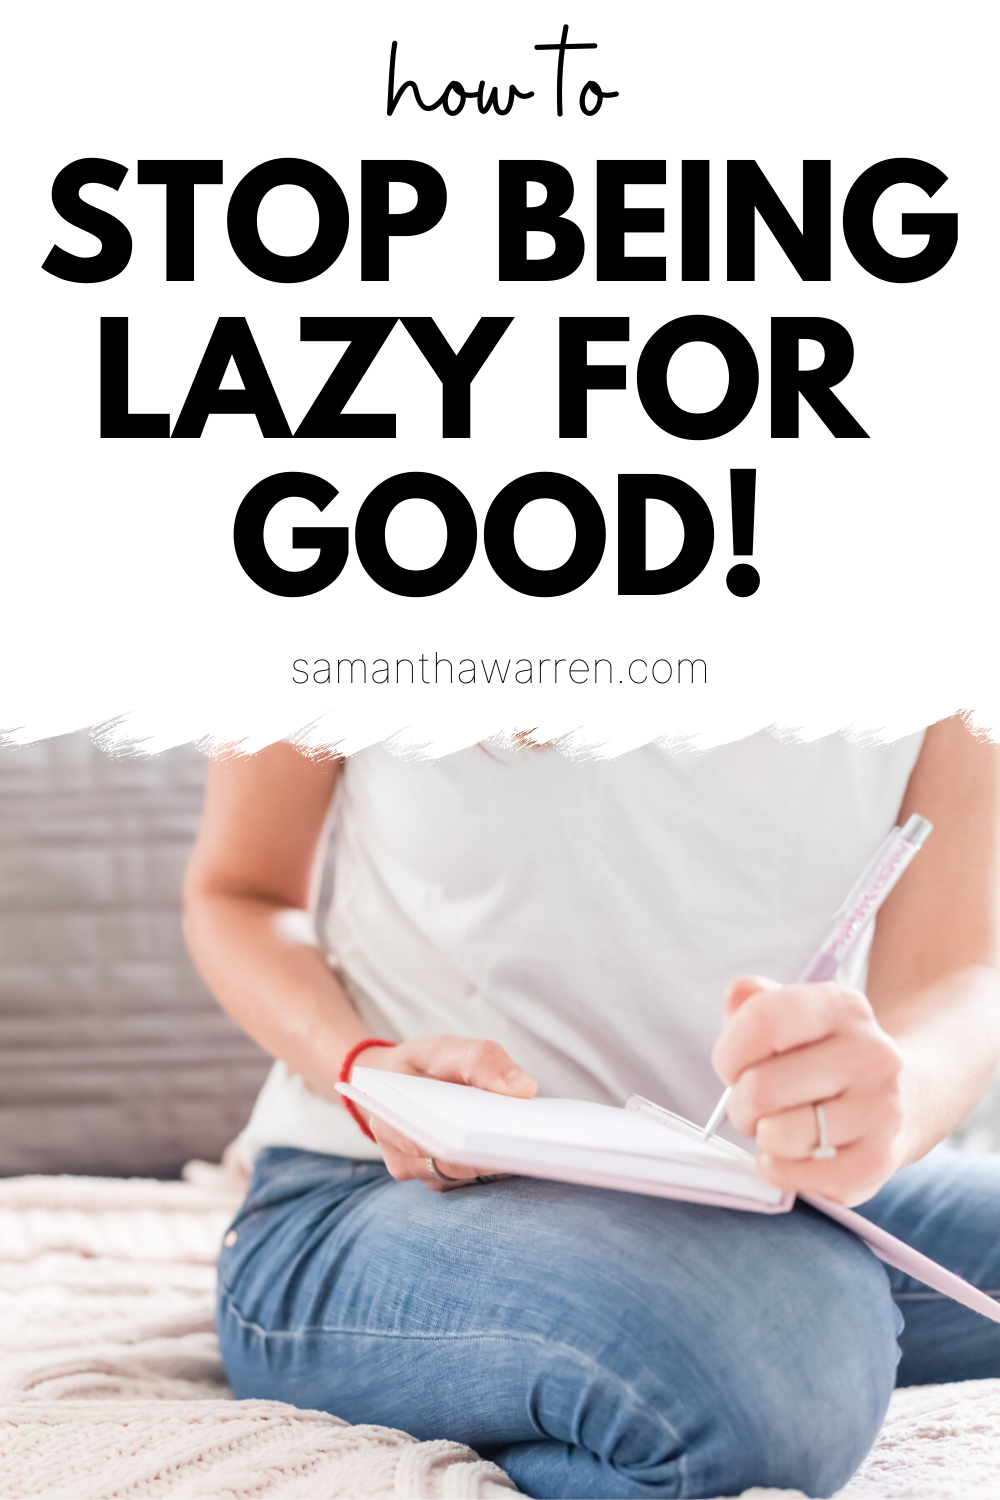 39fcc5bb55c6a275fb5b8a01722c6673 - How To Get Out Of The Habit Of Being Lazy